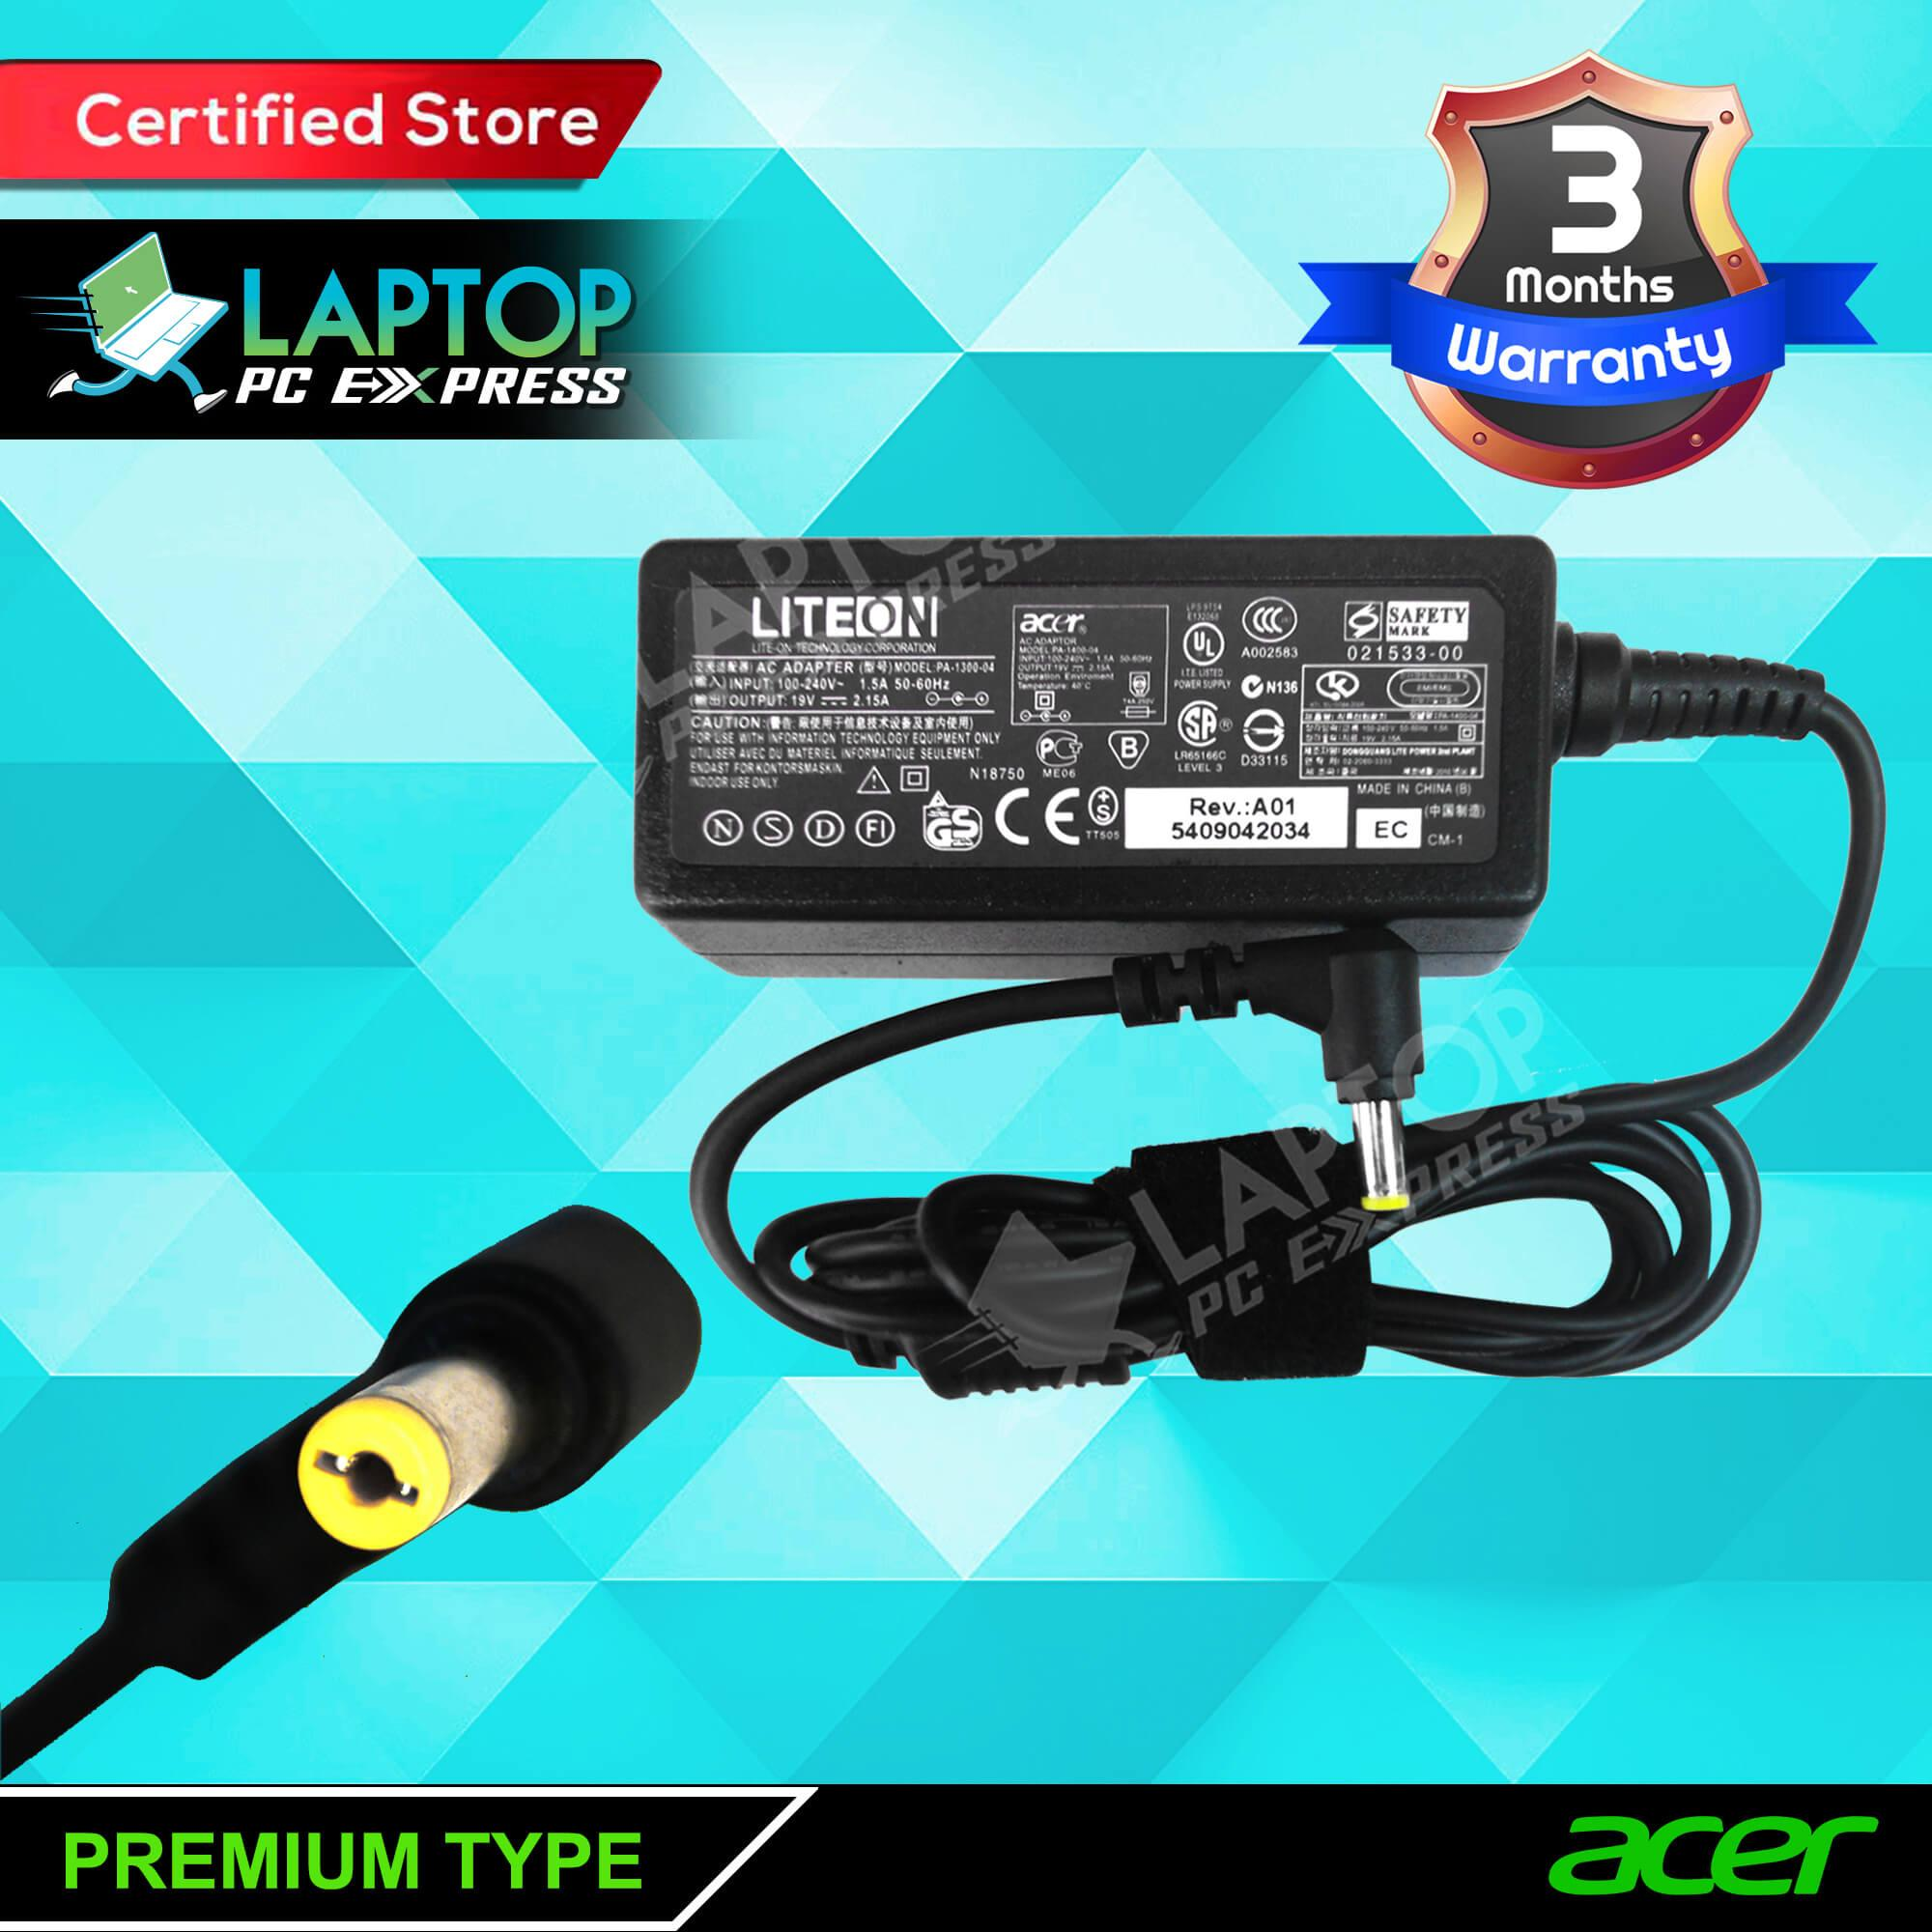 Acer Computer Accessories Philippines Pc For Sale Circuit 12v To 19v Laptop Power Supply Concept Circuits Designed Charger 21a 215a Aspire One D270 5517